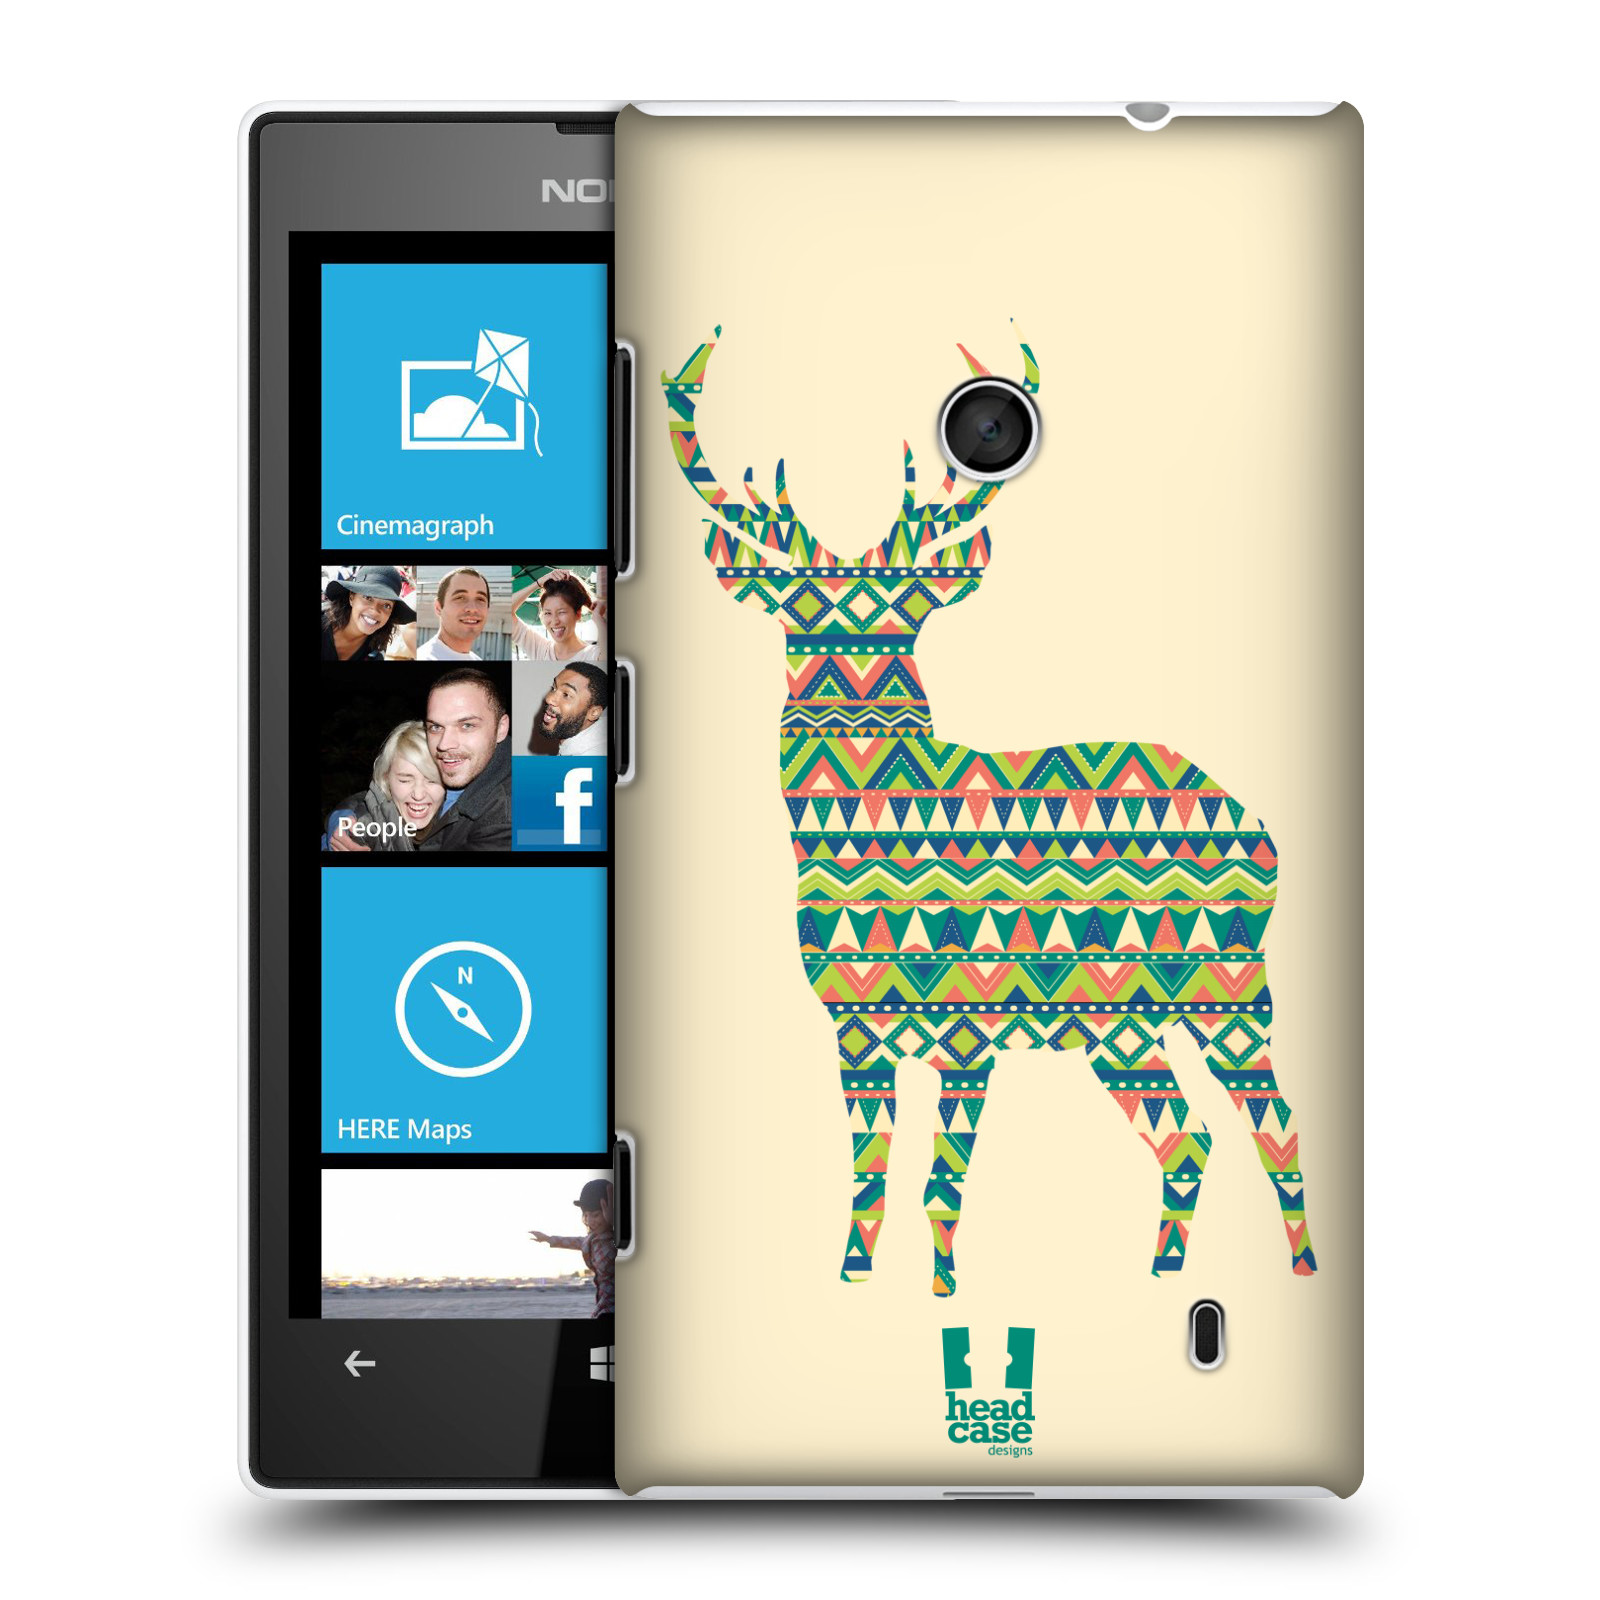 HEAD CASE DESIGNS PATTERNED ANIMAL SILHOUETTES CASE FOR NOKIA LUMIA 520